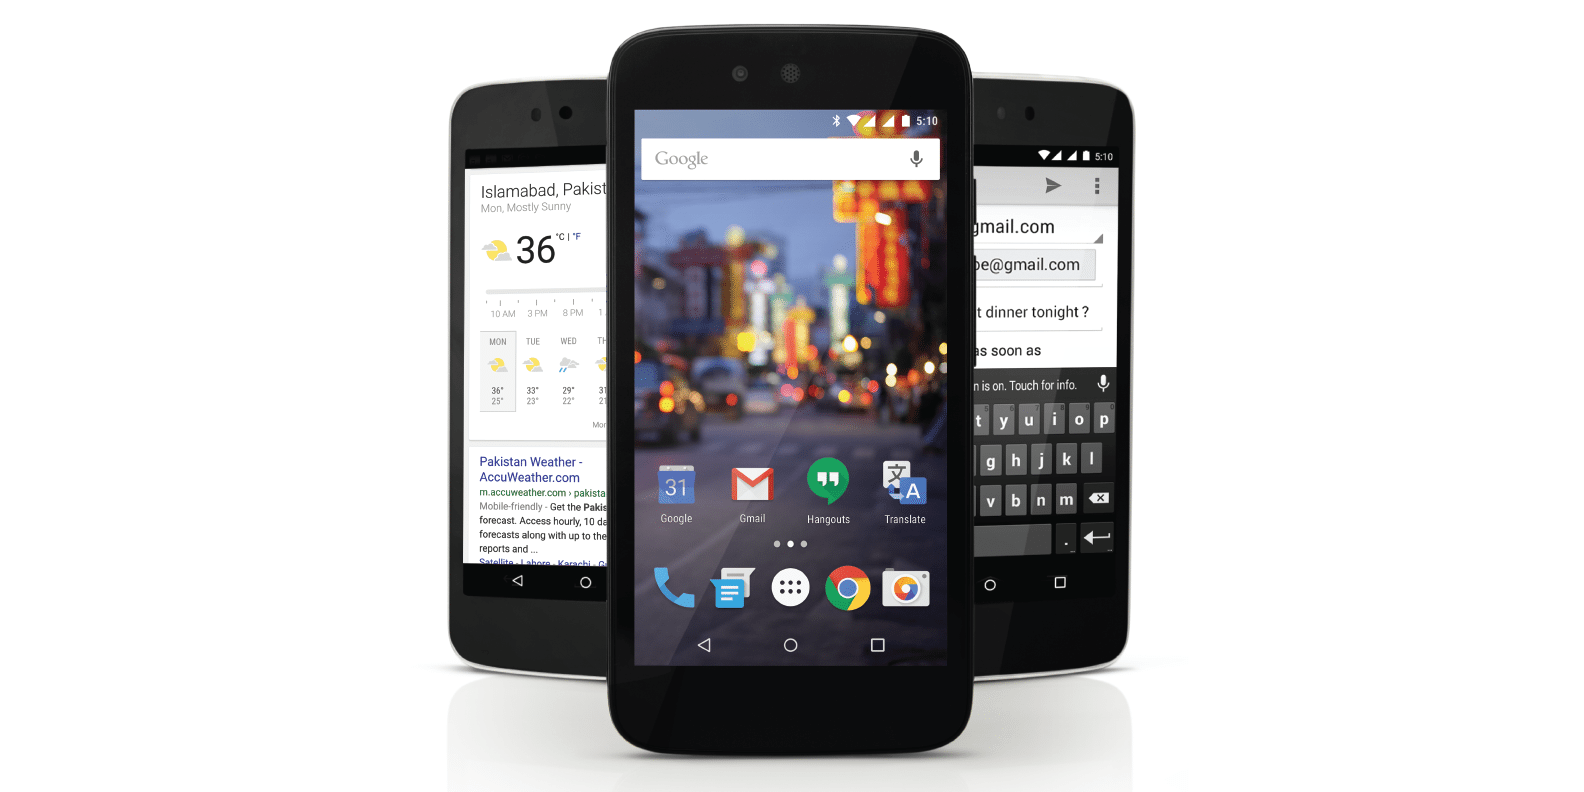 android one phone price in india